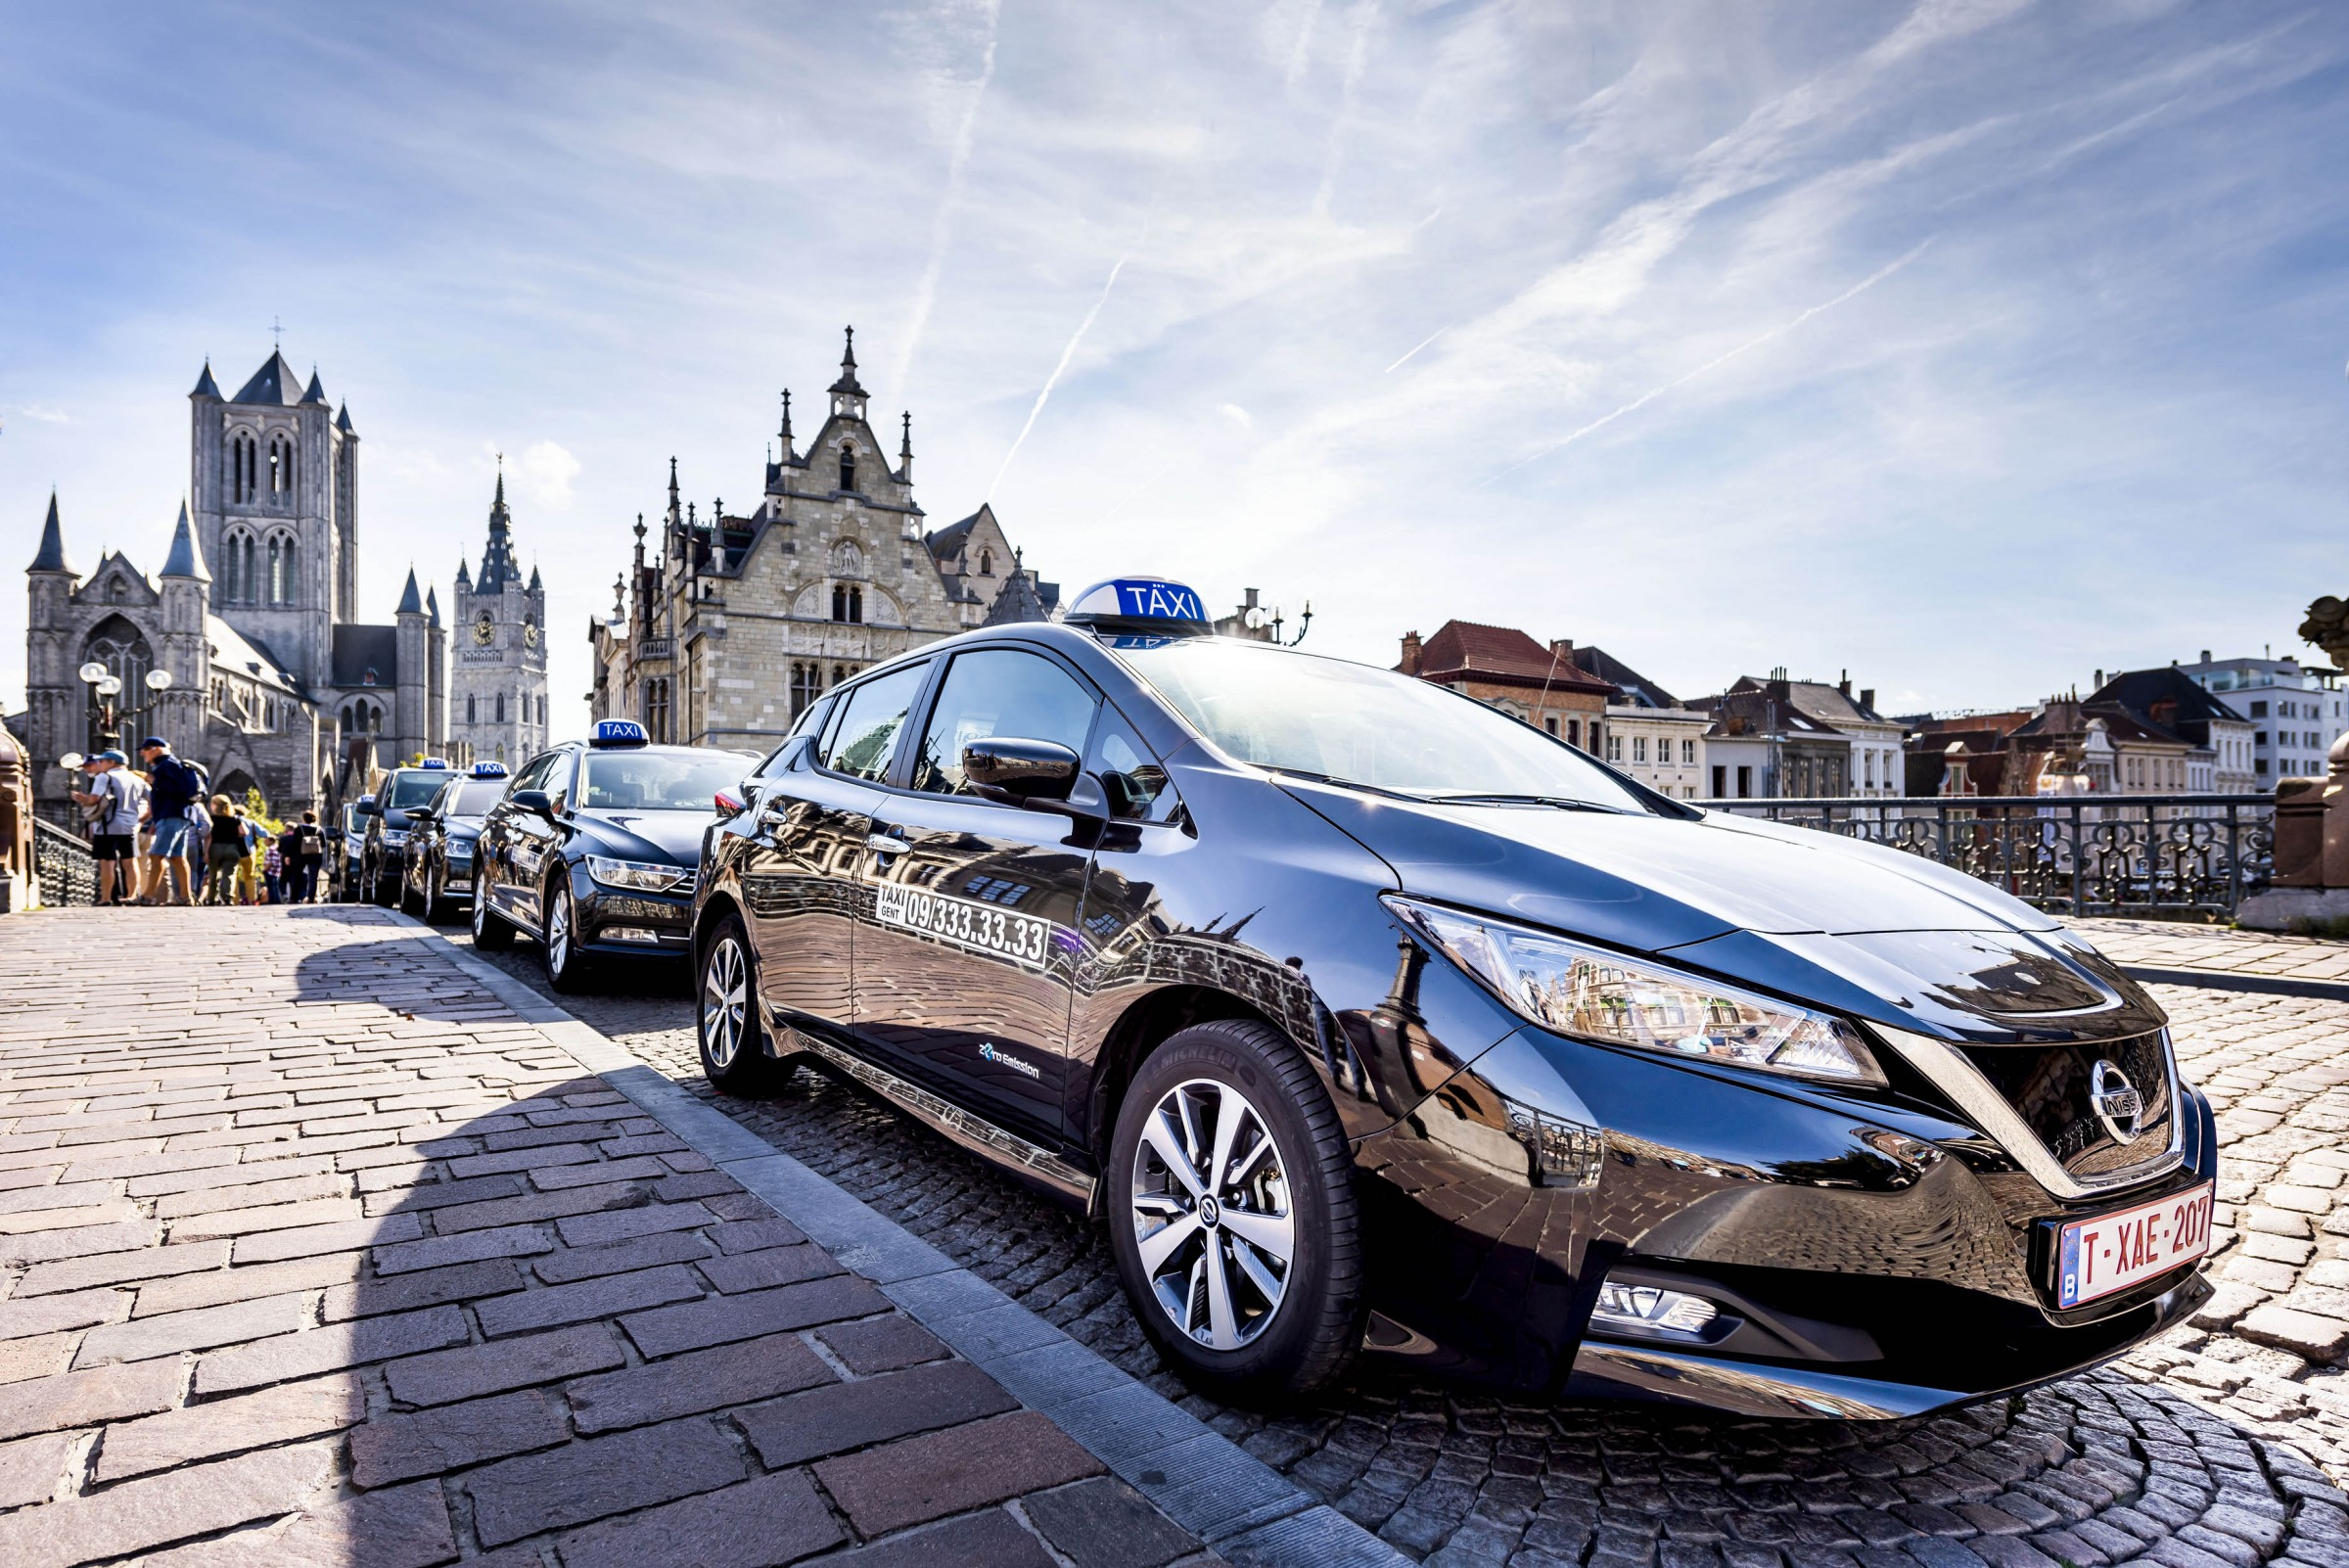 Taxi's-Gent-09.jpg